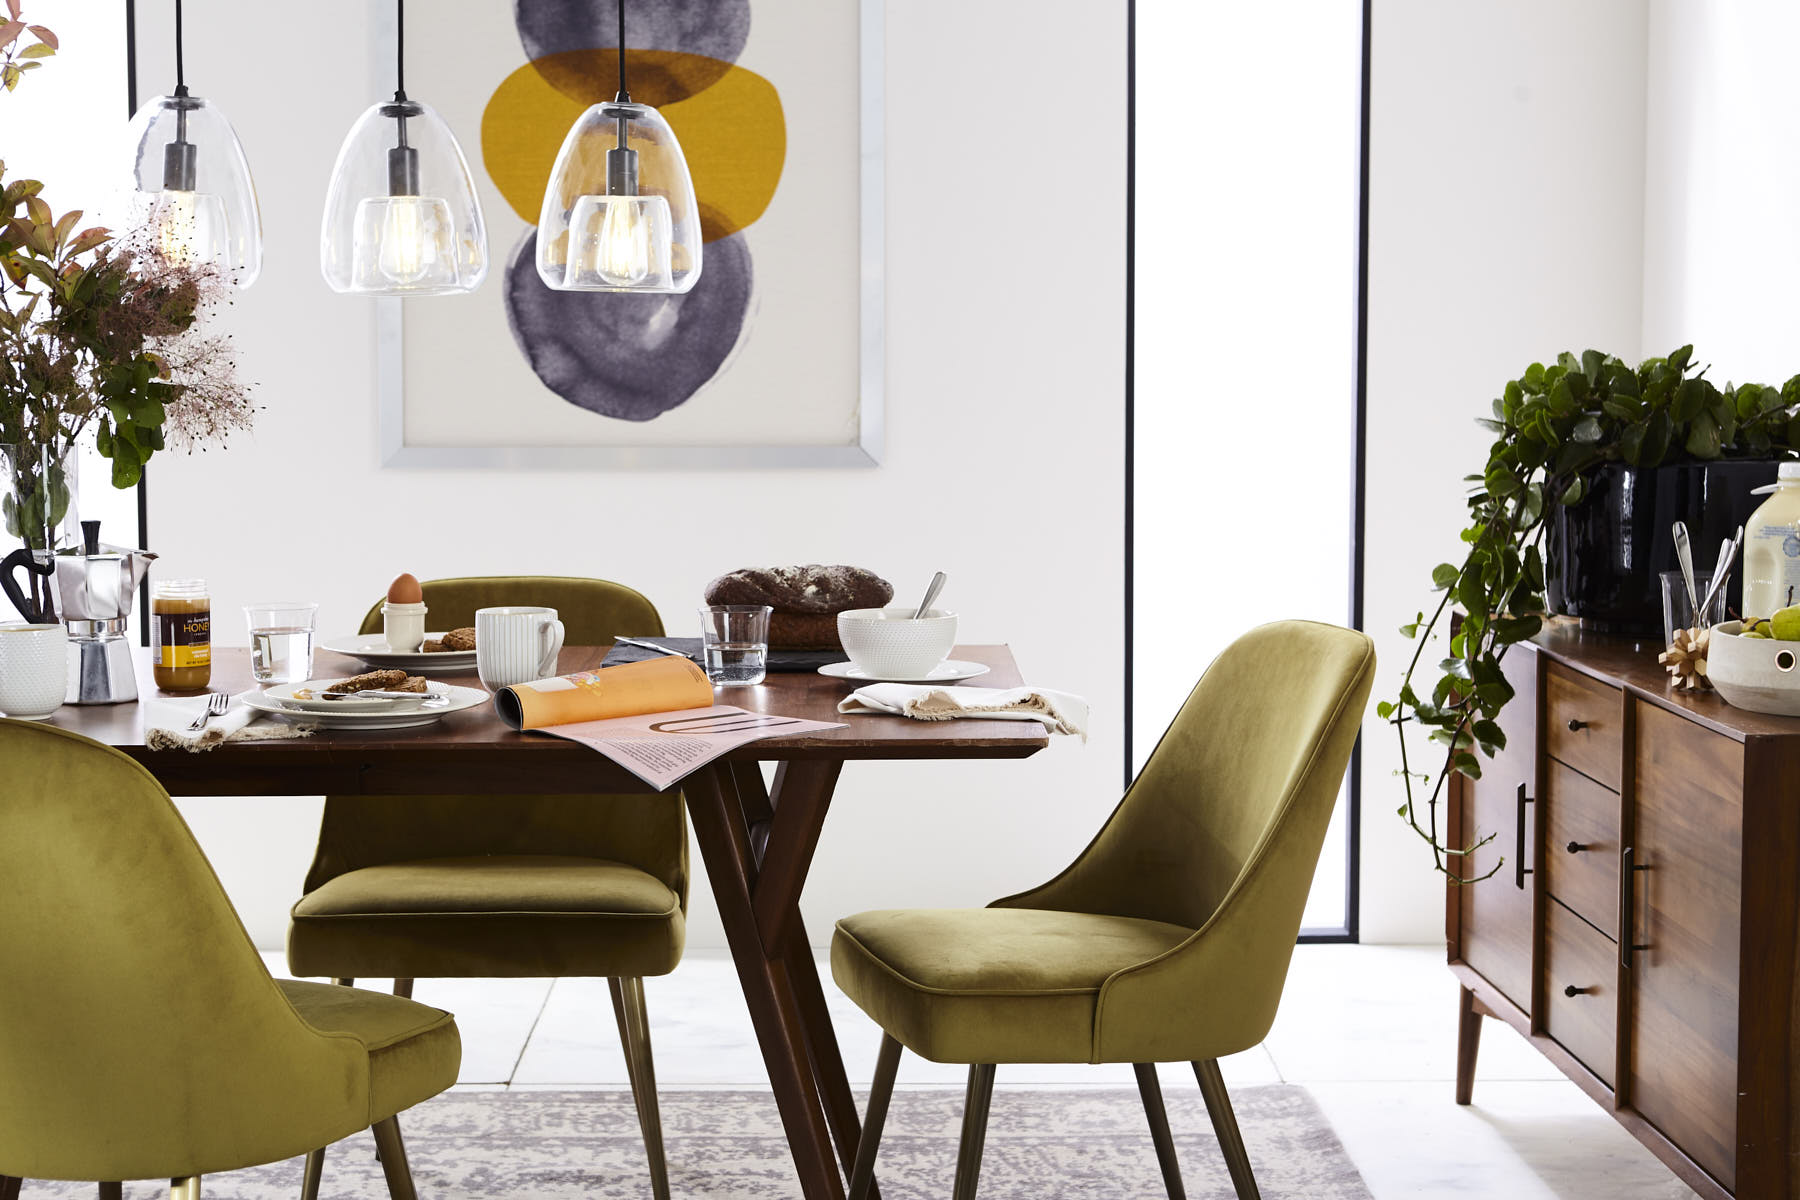 d5-mid-century-dining-editorial-ho17-0025